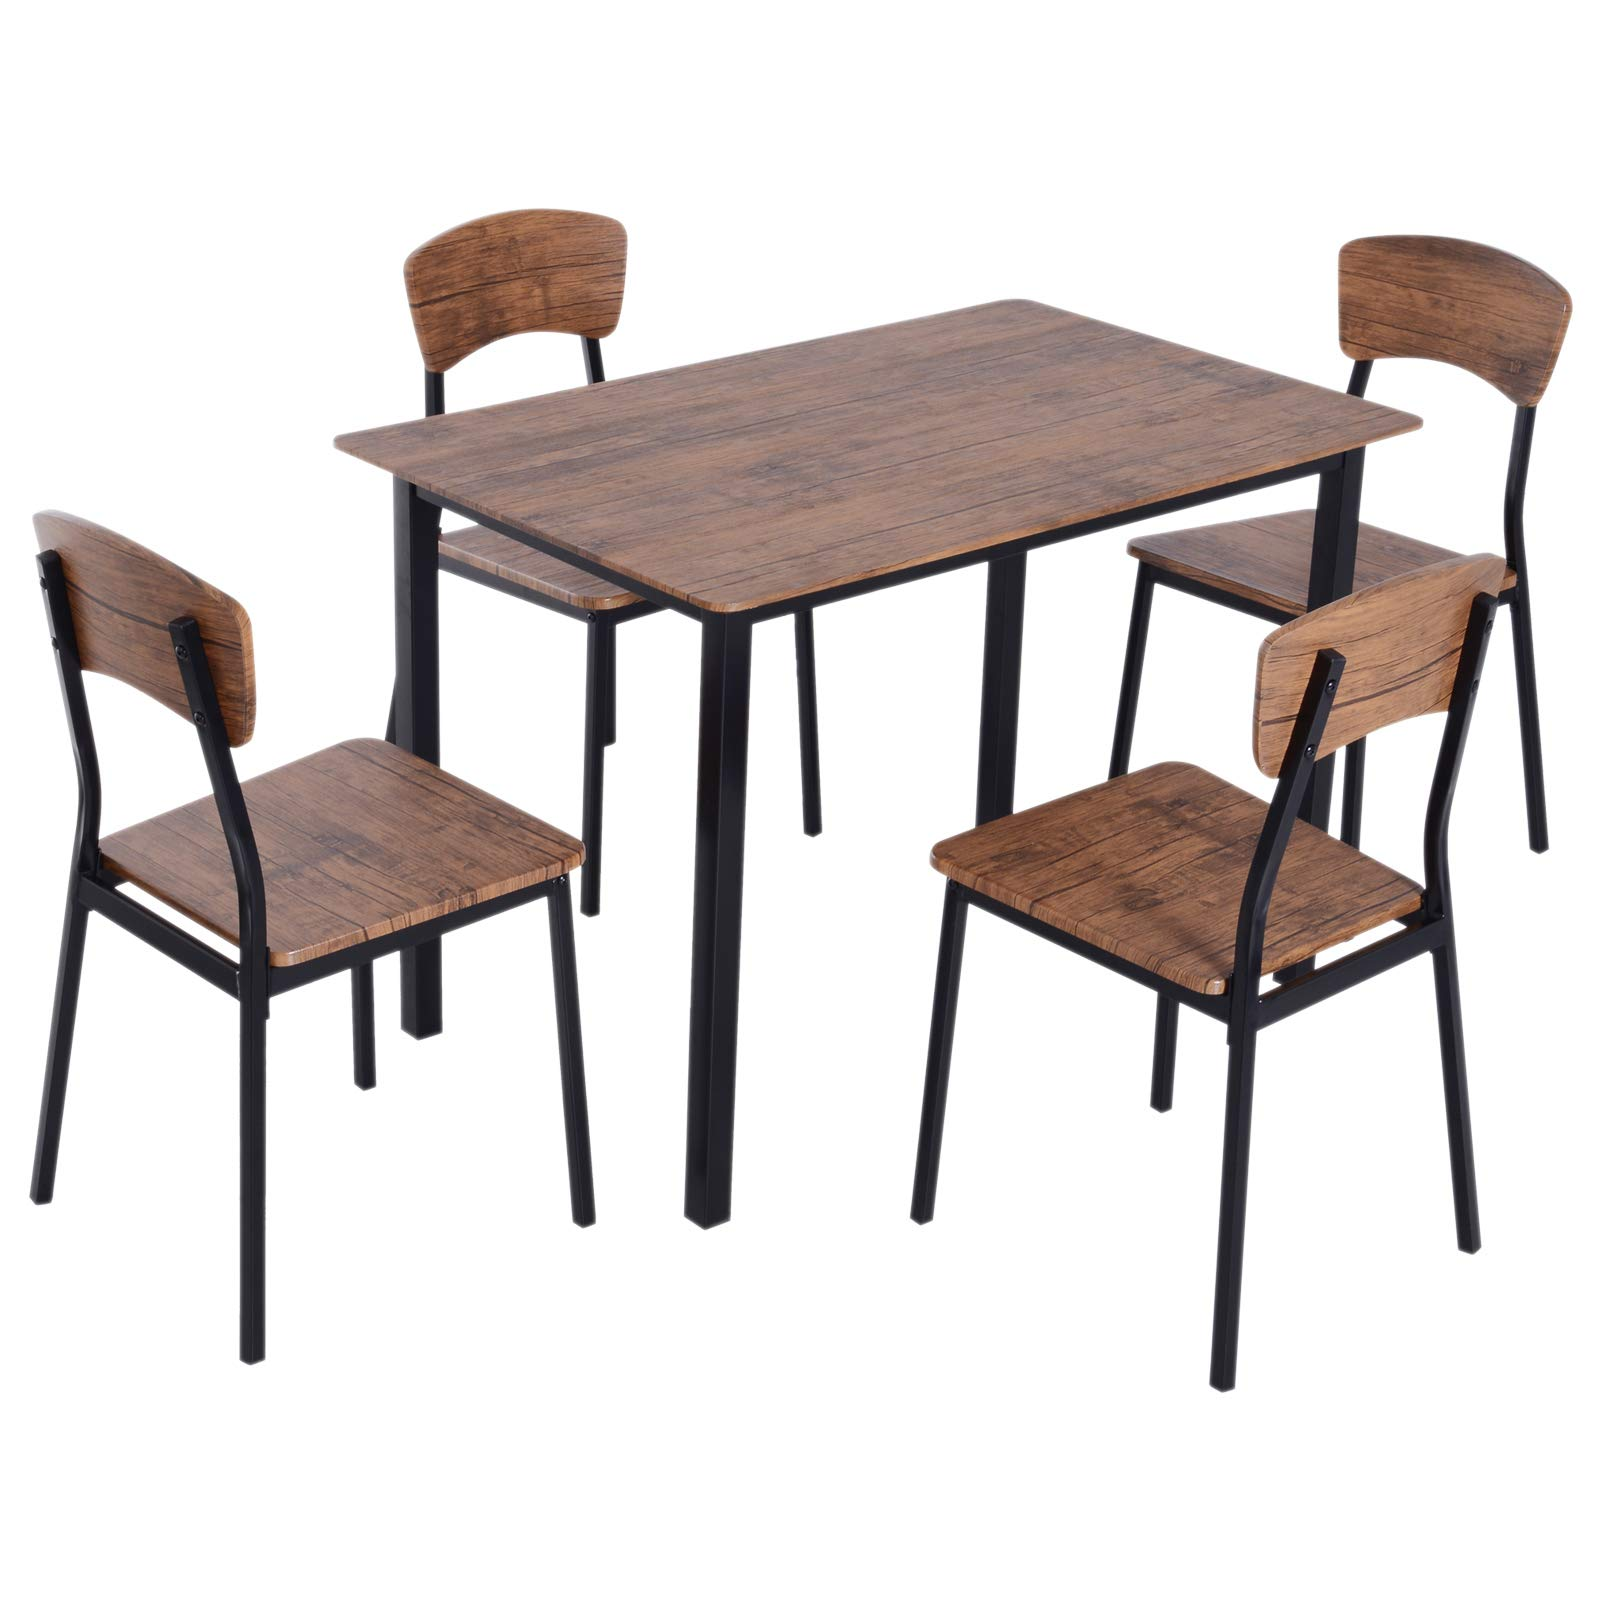 HOMCOM 5 Piece Modern Counter Height Dining Table and Chairs Set by HOMCOM